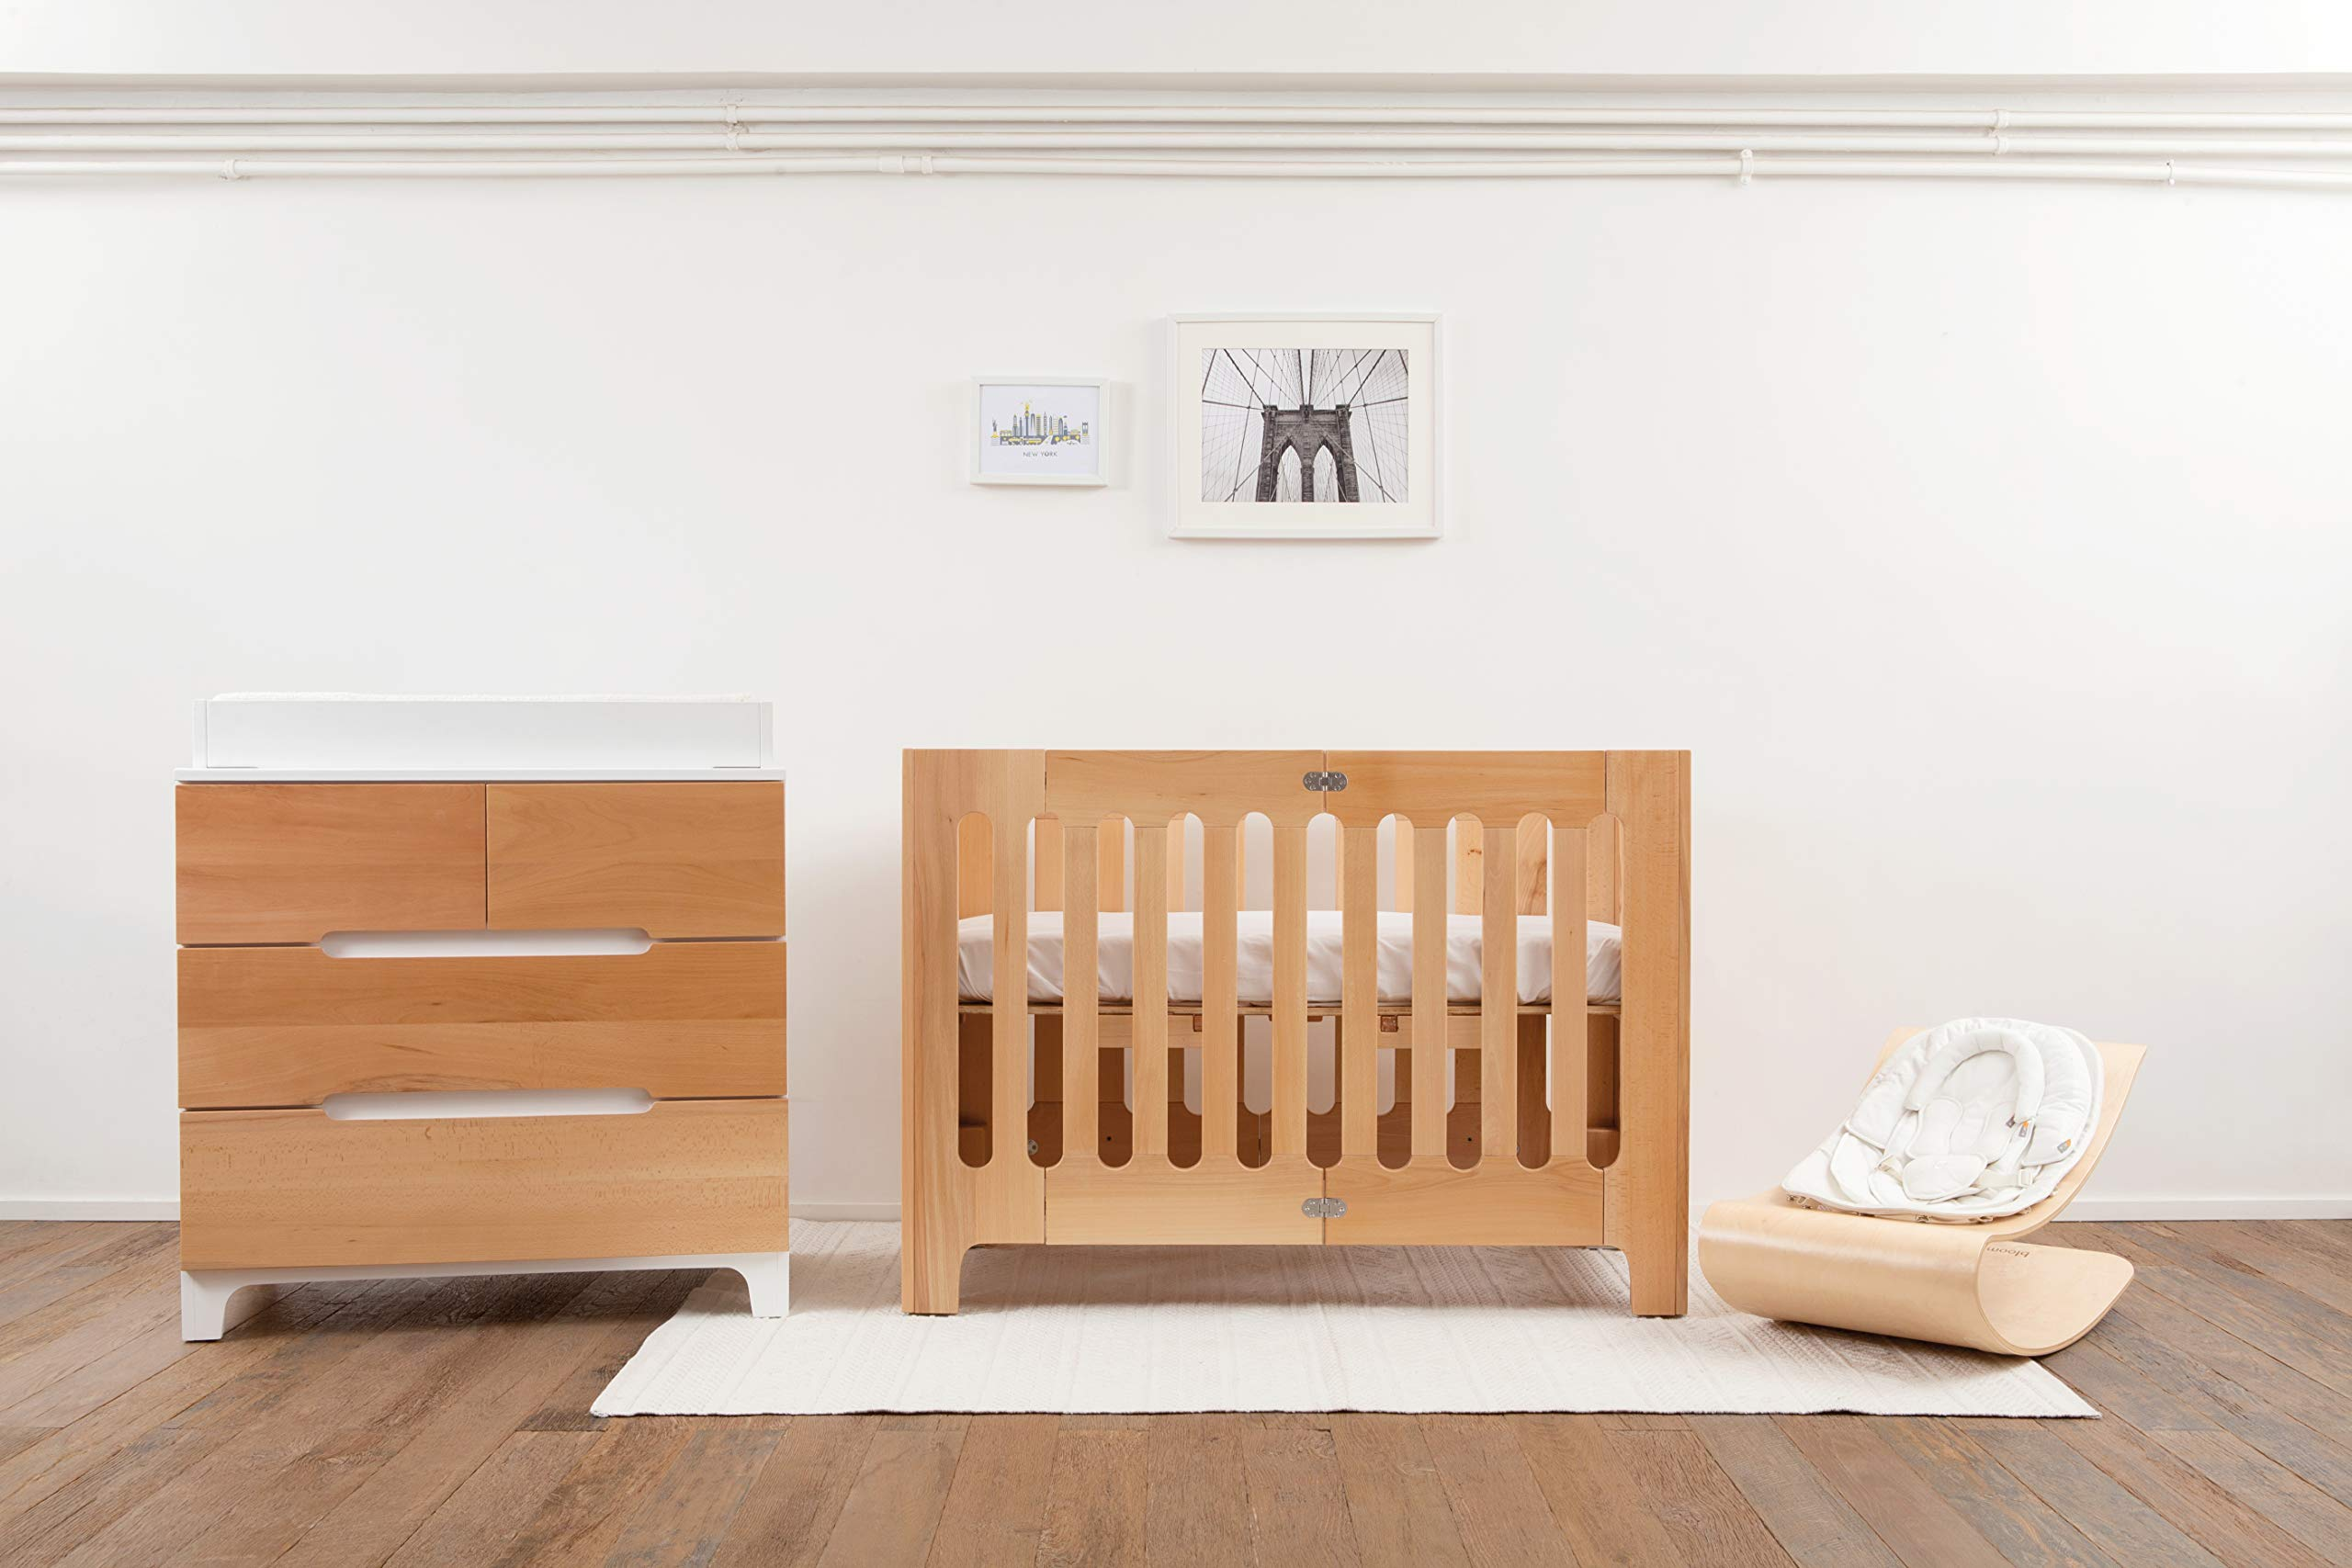 Bloom Alma Papa Baby Crib/Cot (Convertible, Sold Wood, 0-4 Years) (Natural)  Alma Papa is suitable from newborn to 4 years, beautiful, modern solid wood crib with 2 mattress heights allow use as a bassinet & full-size crib patented compact-fold construction for easy storage & transport (durable storage bag available separately) open slats on all four sides maximize all important air-flow 5